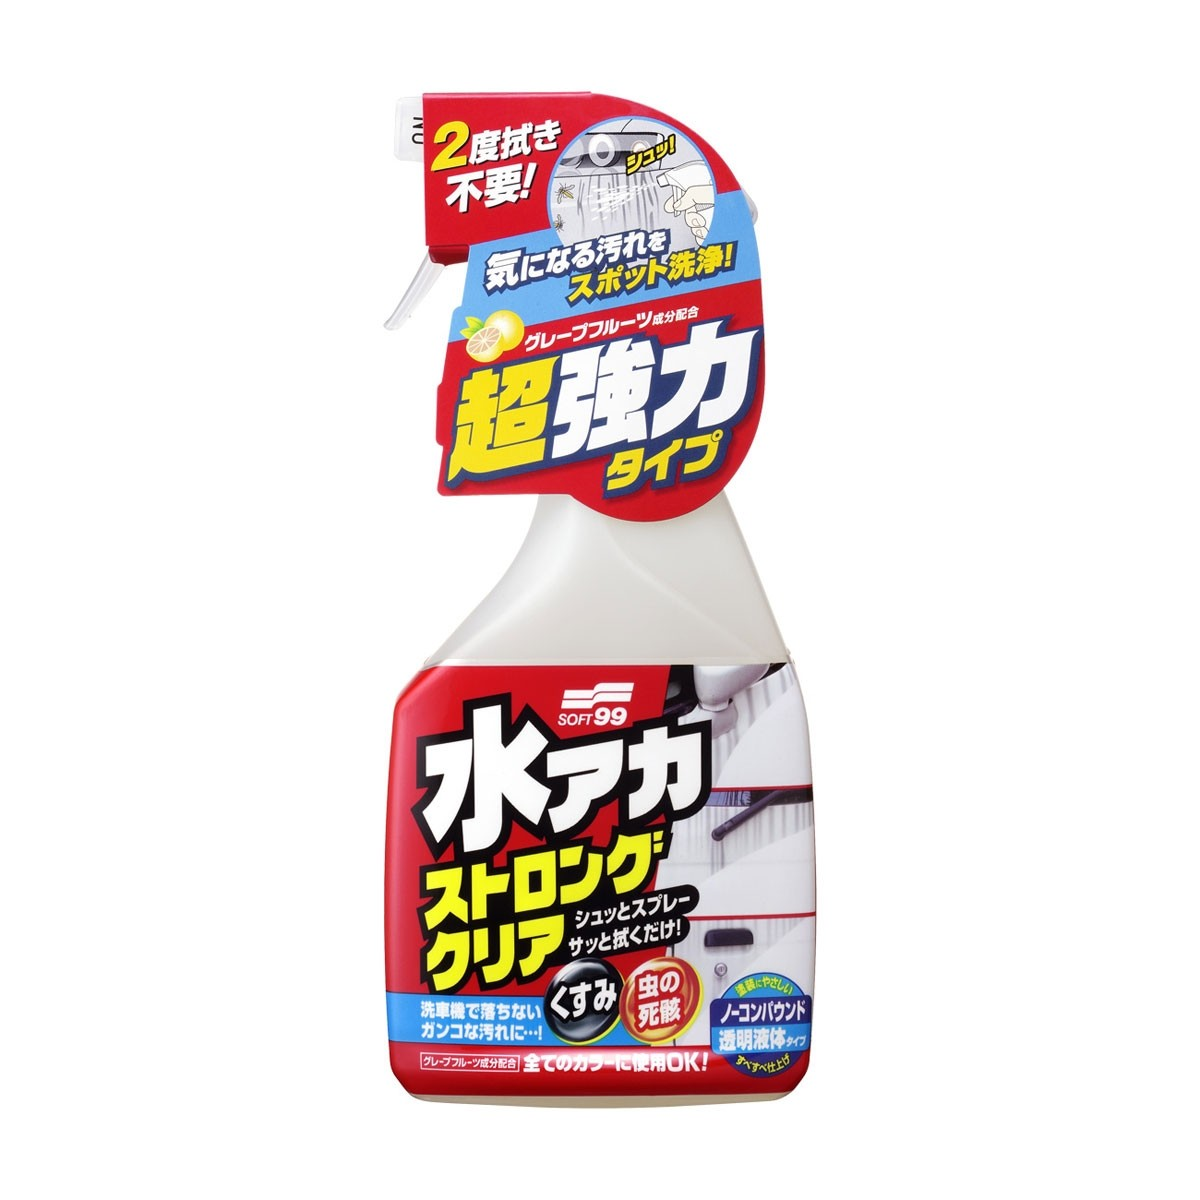 Car stain cleaner